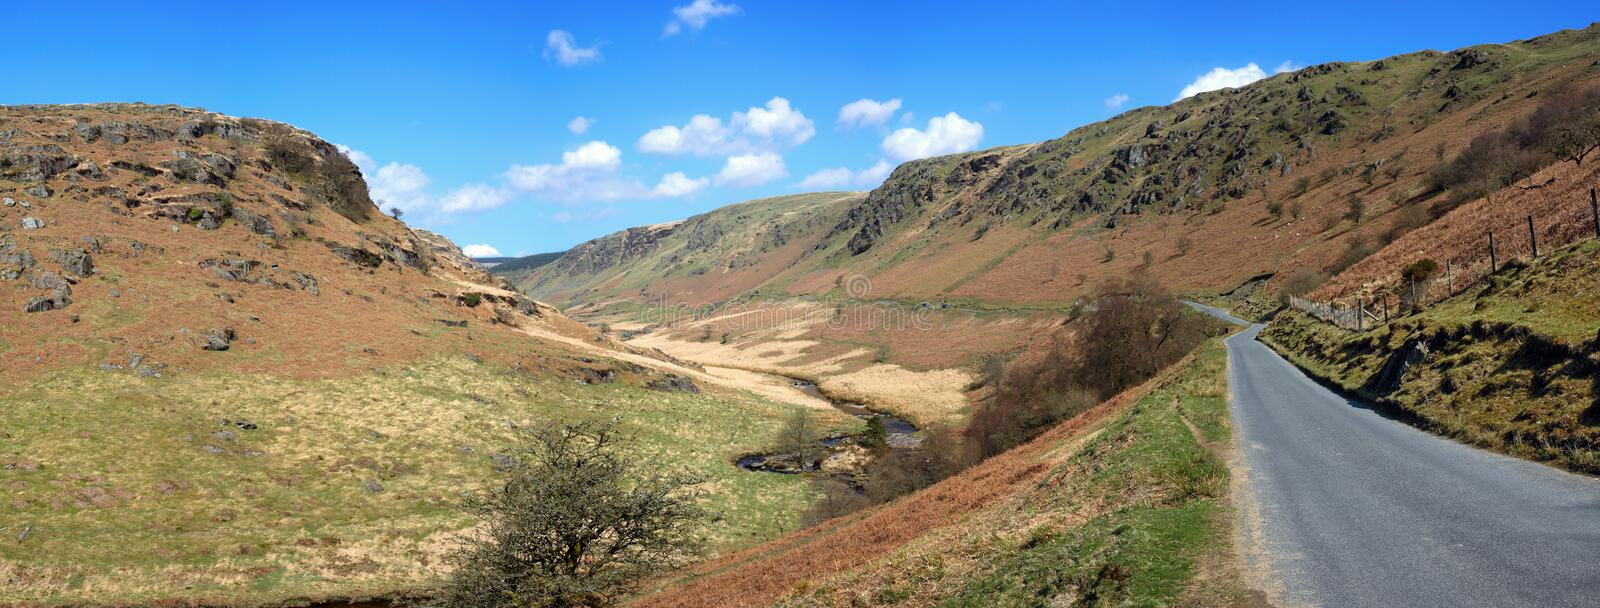 Panoramic narrow country road in Wales, UK. royalty free stock photos